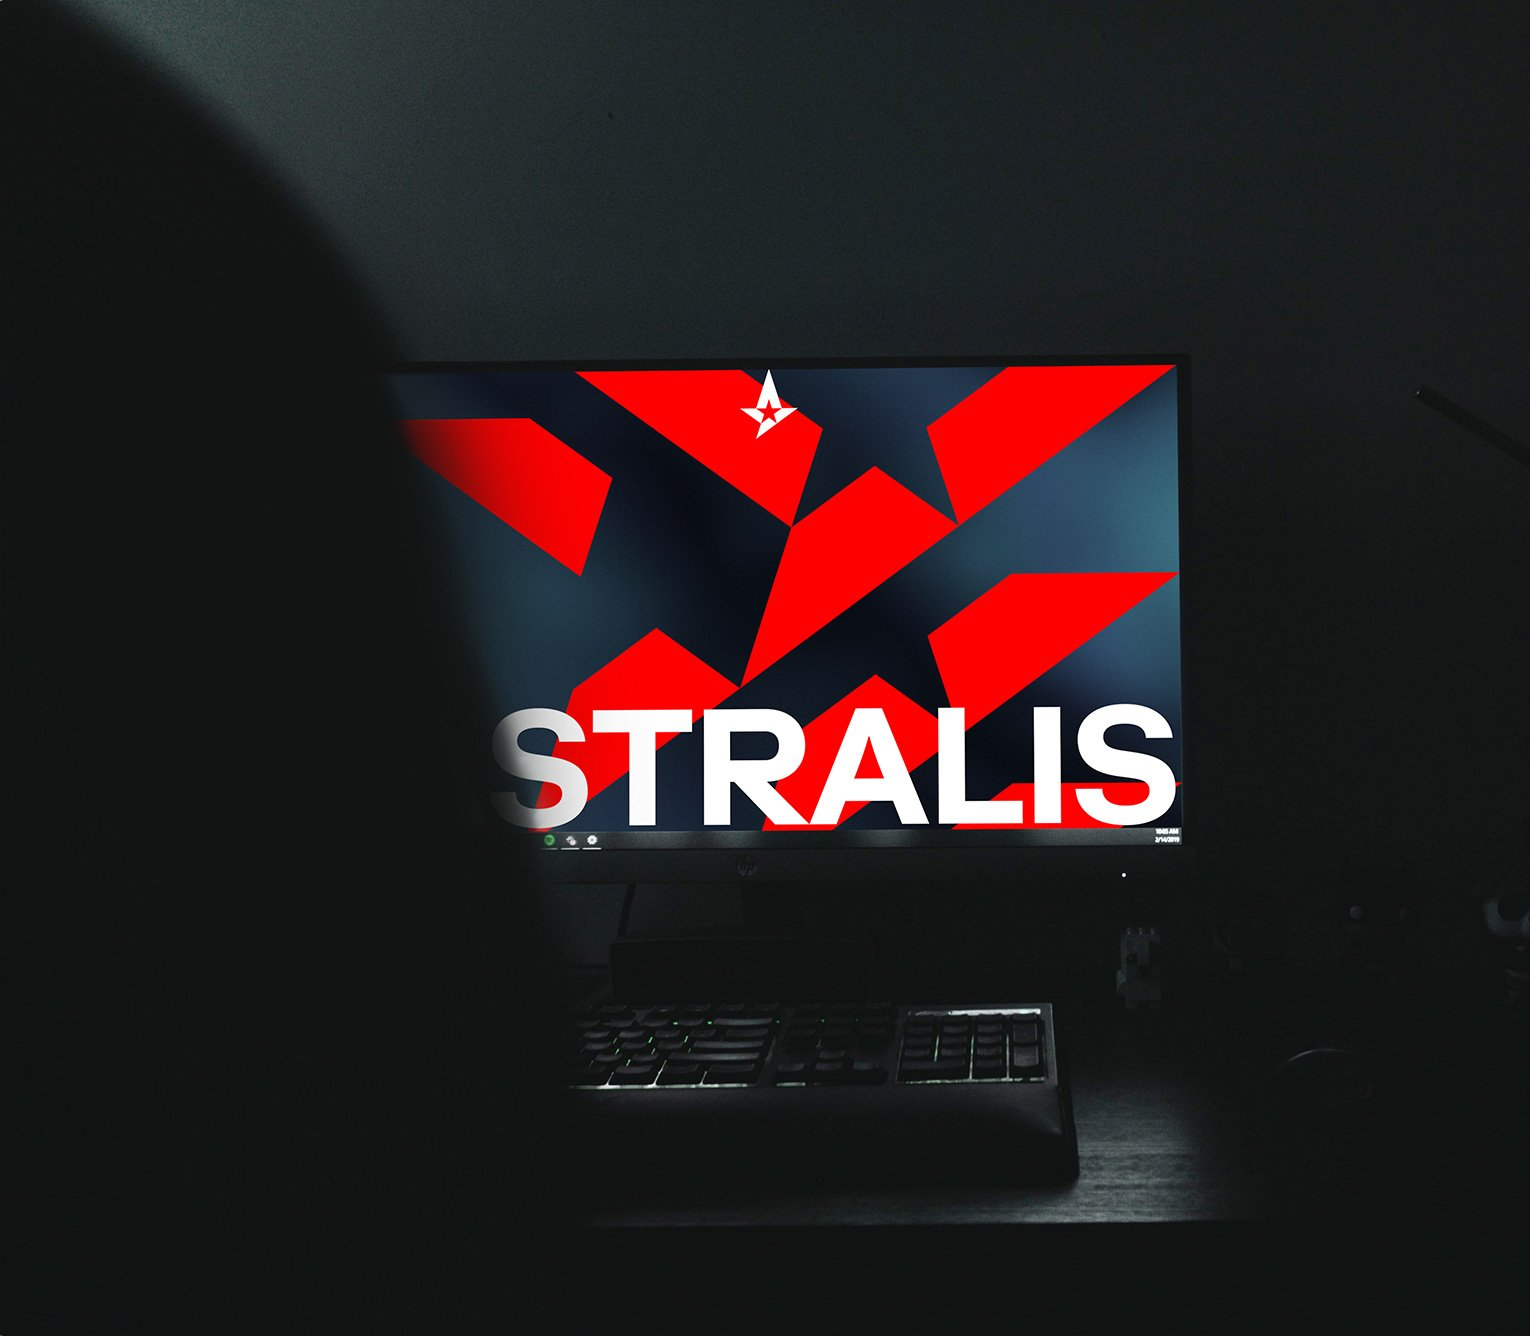 09-ASTRALIS-PHOTO-screen-saver-in-computer-80